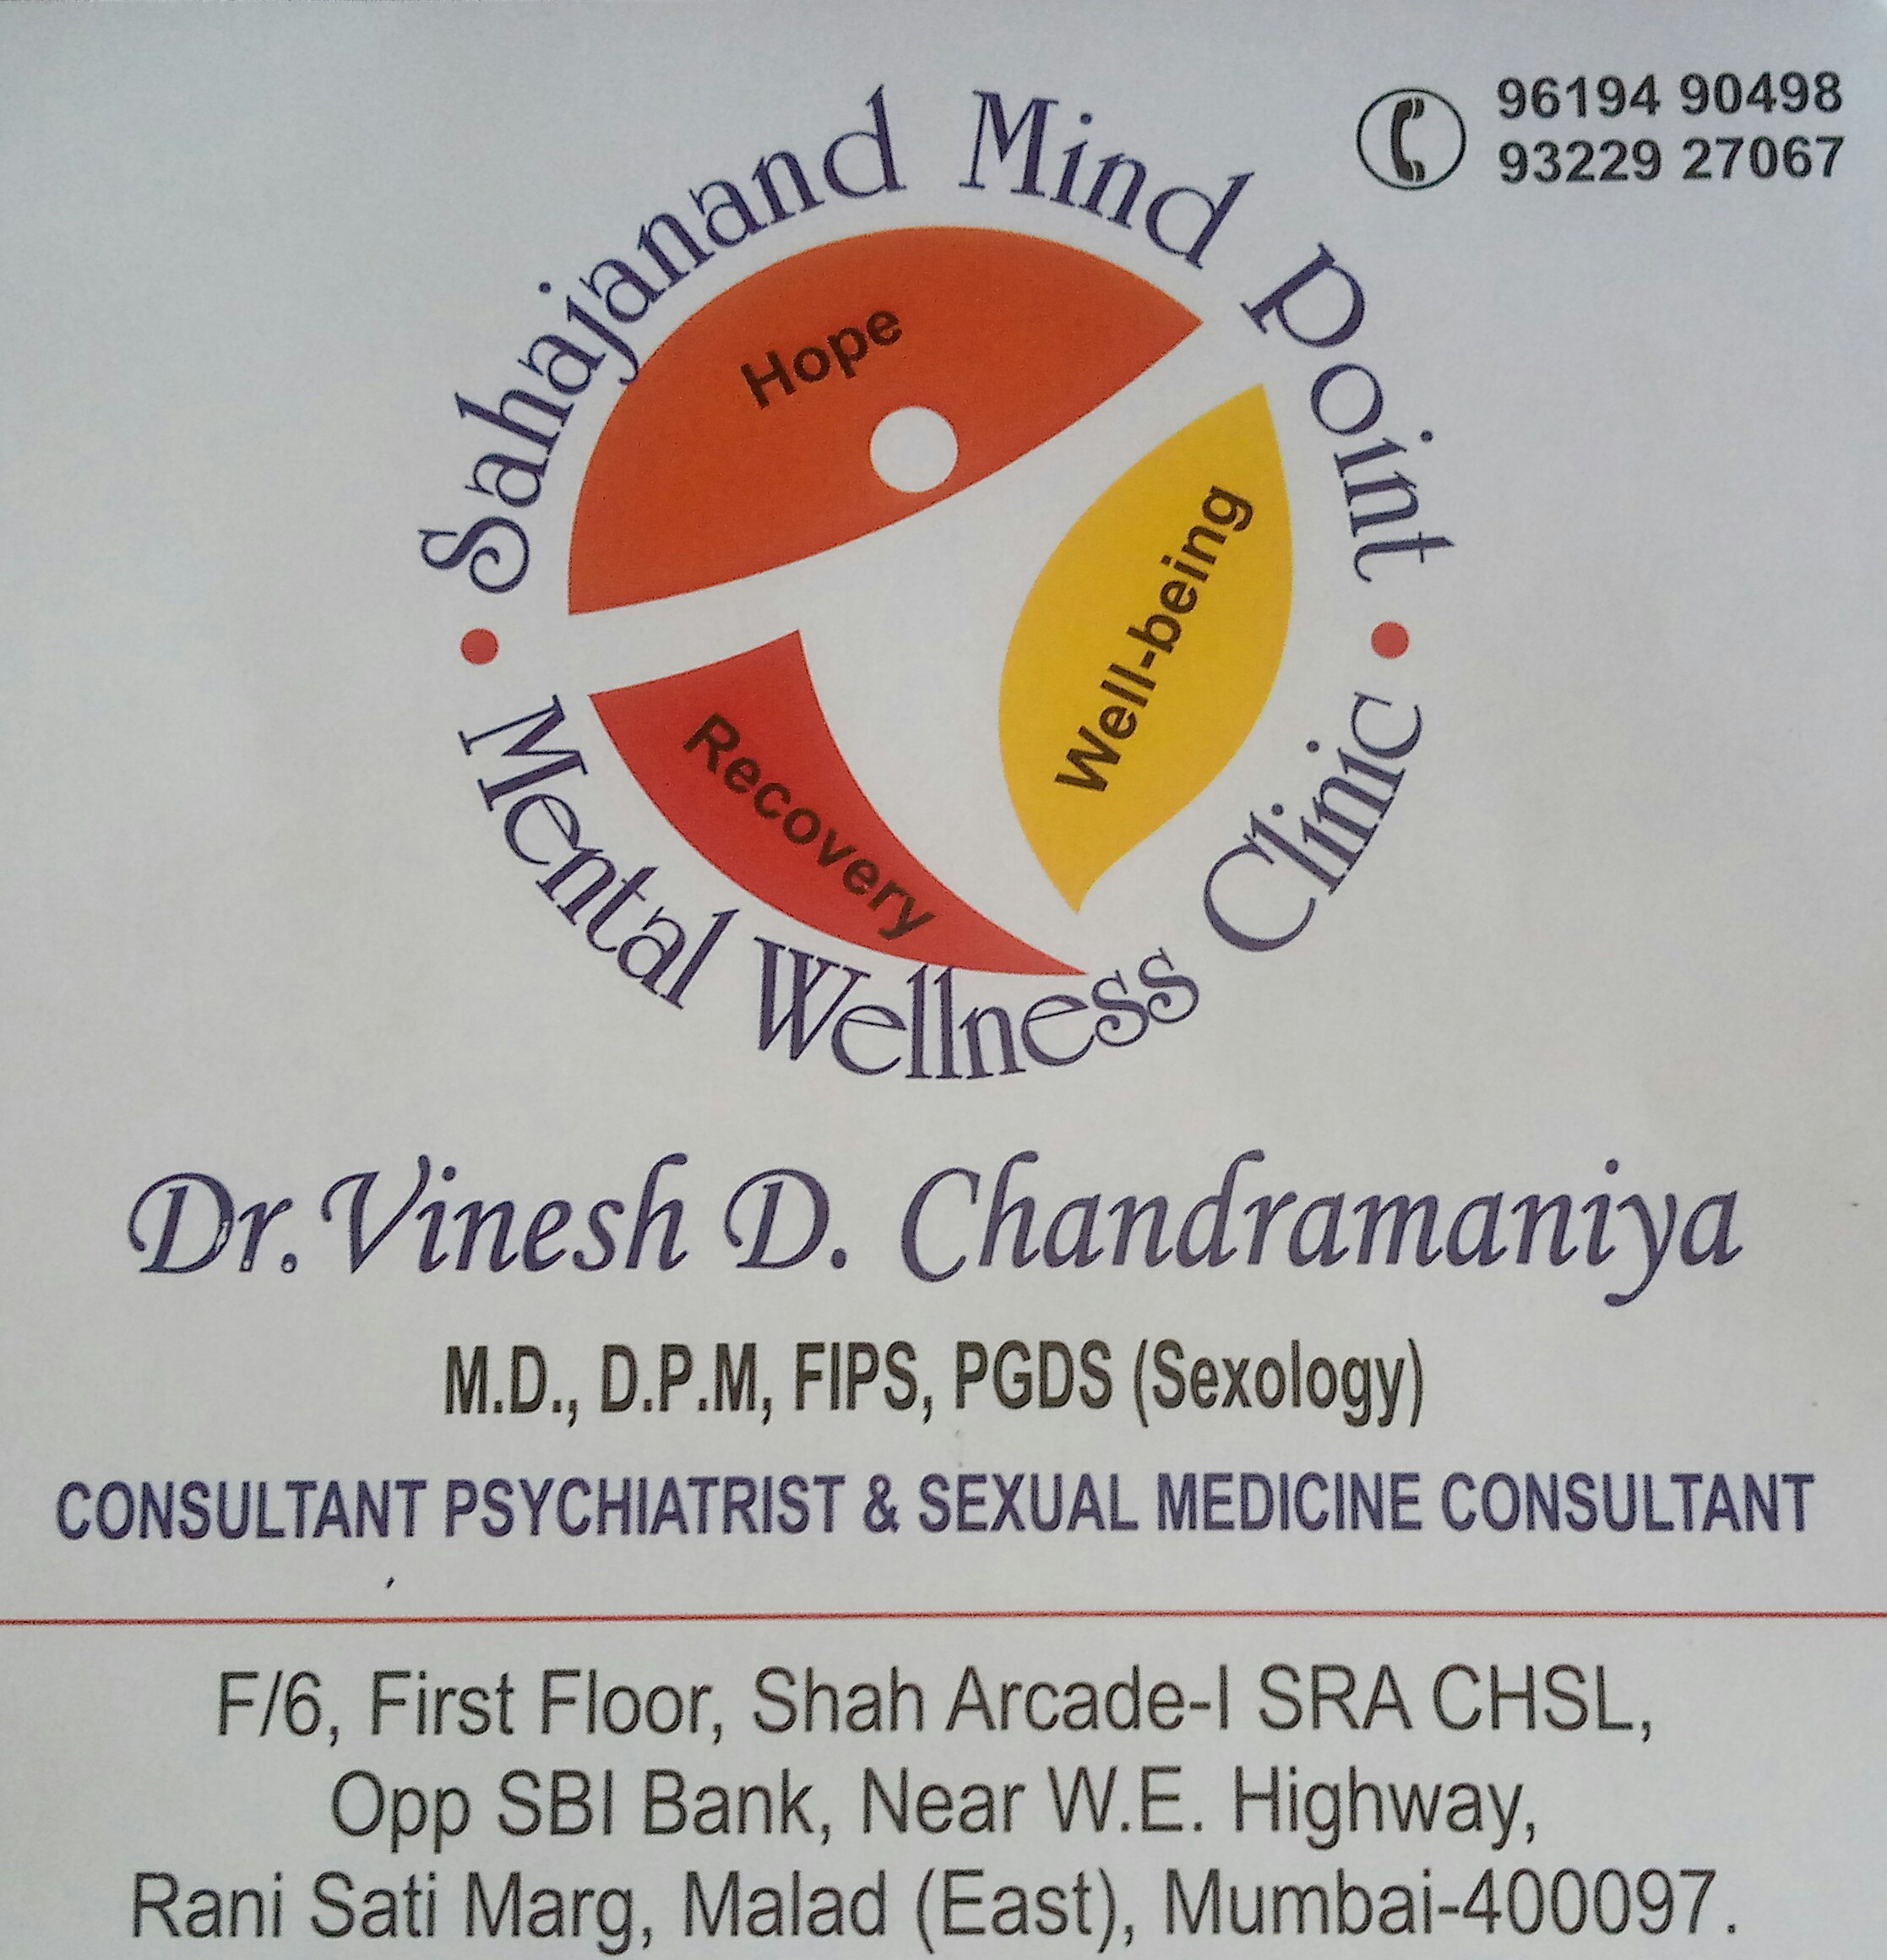 Sahajanand Mind Point Mental Welleness Clinic, Mumbai